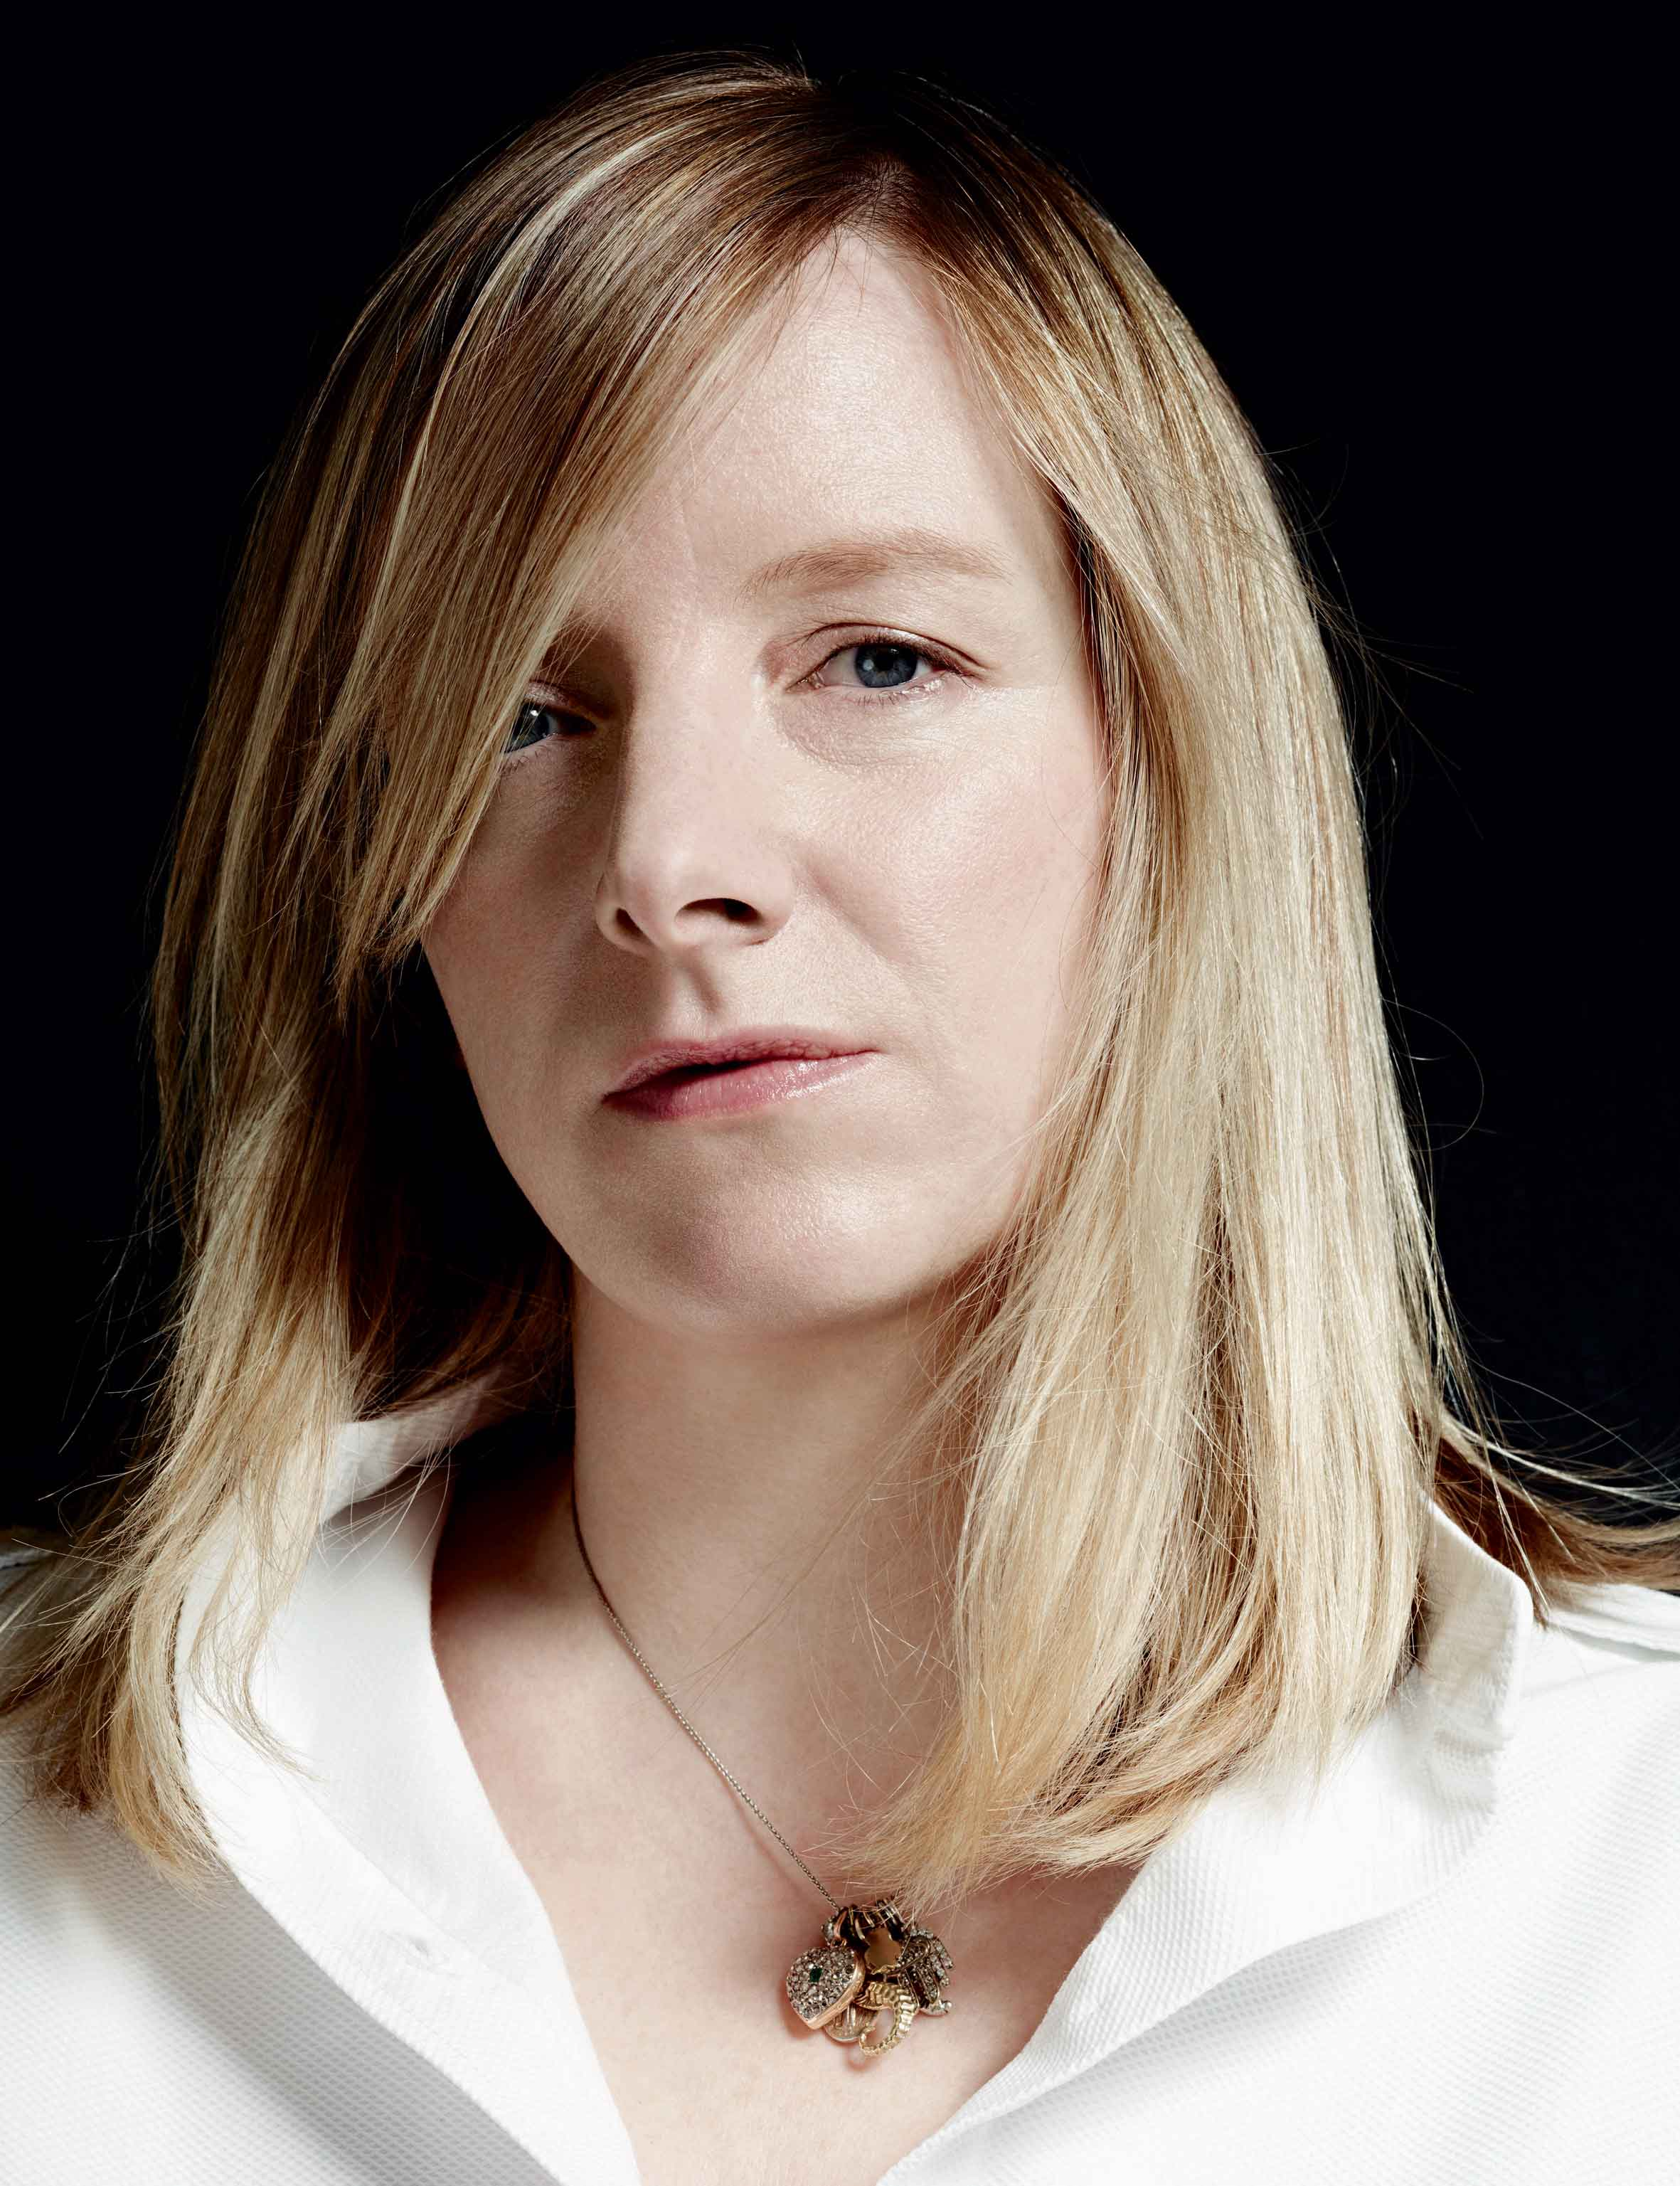 Interview with Sarah Burton, artistic director of Alexander McQueen